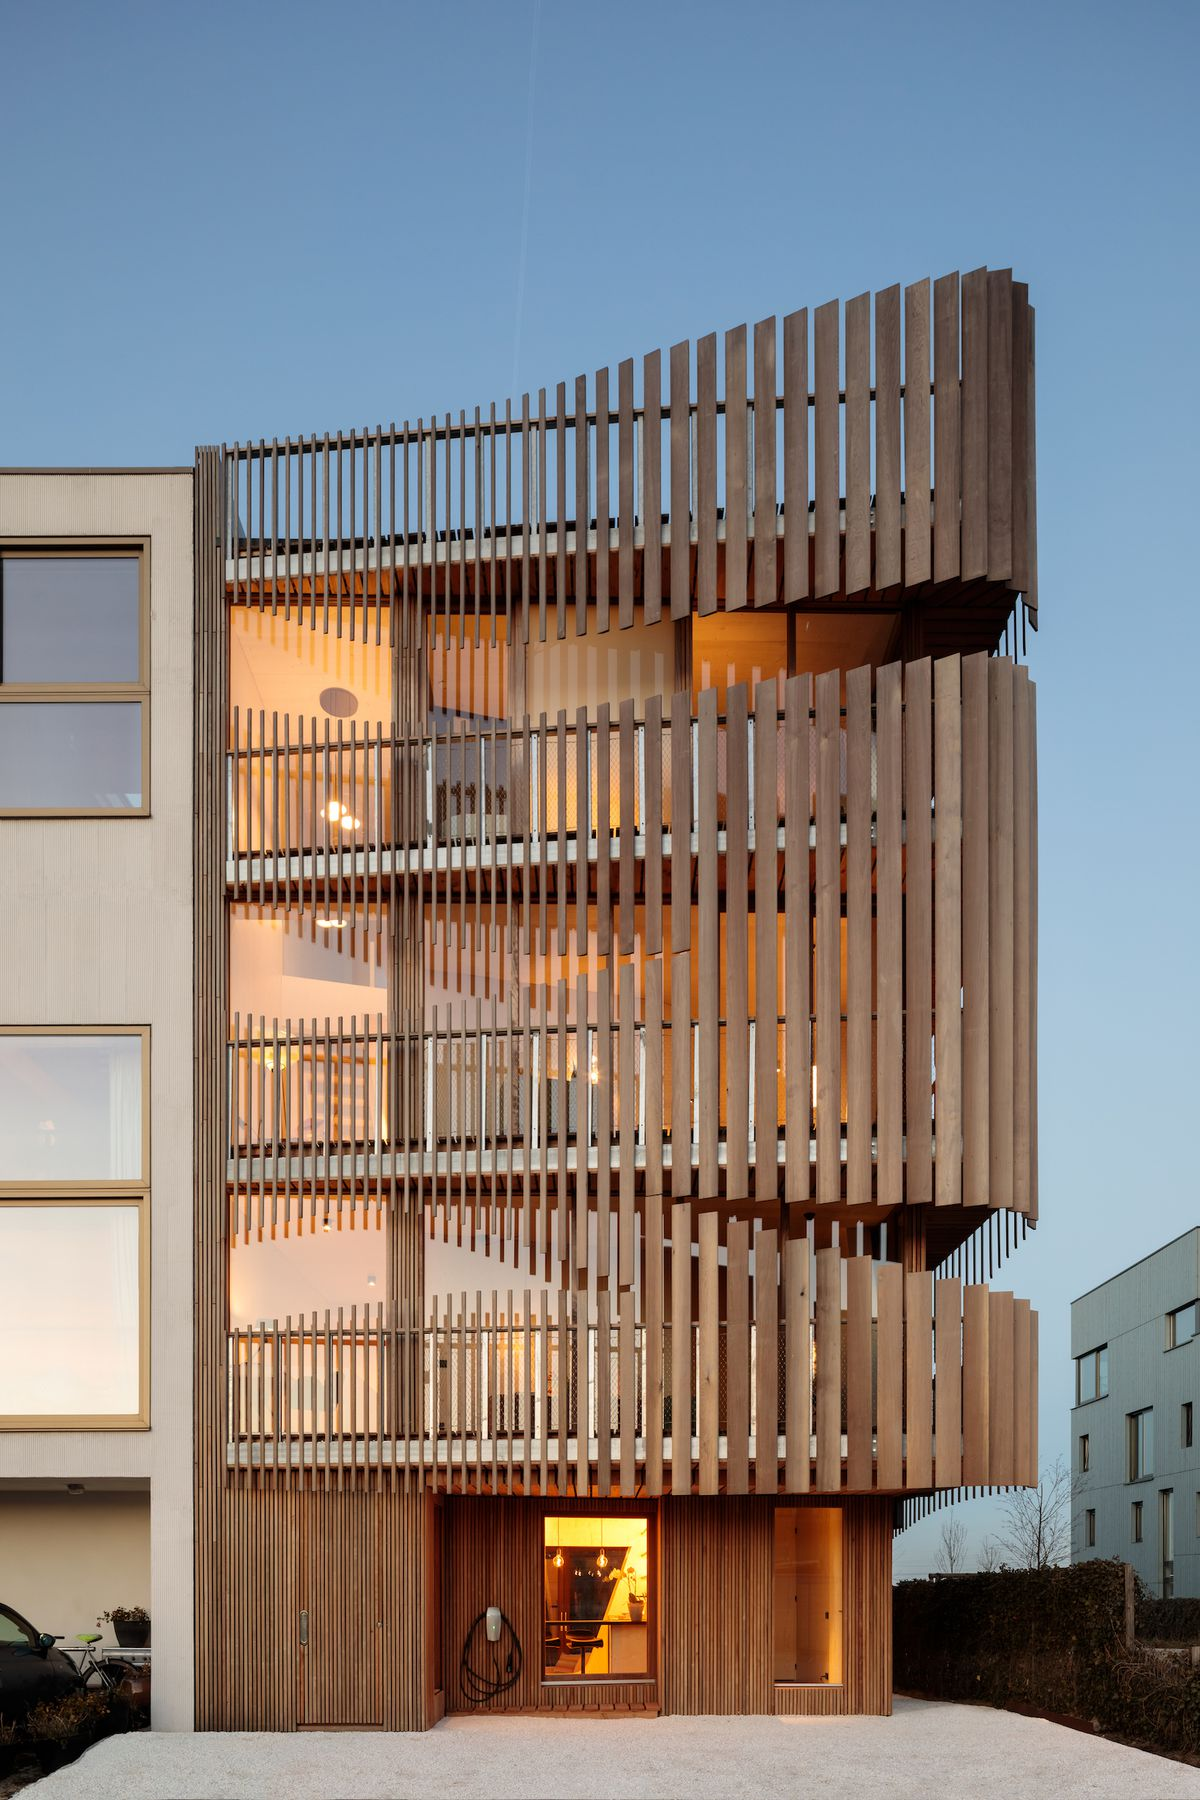 Four-story building with wooden louvers.